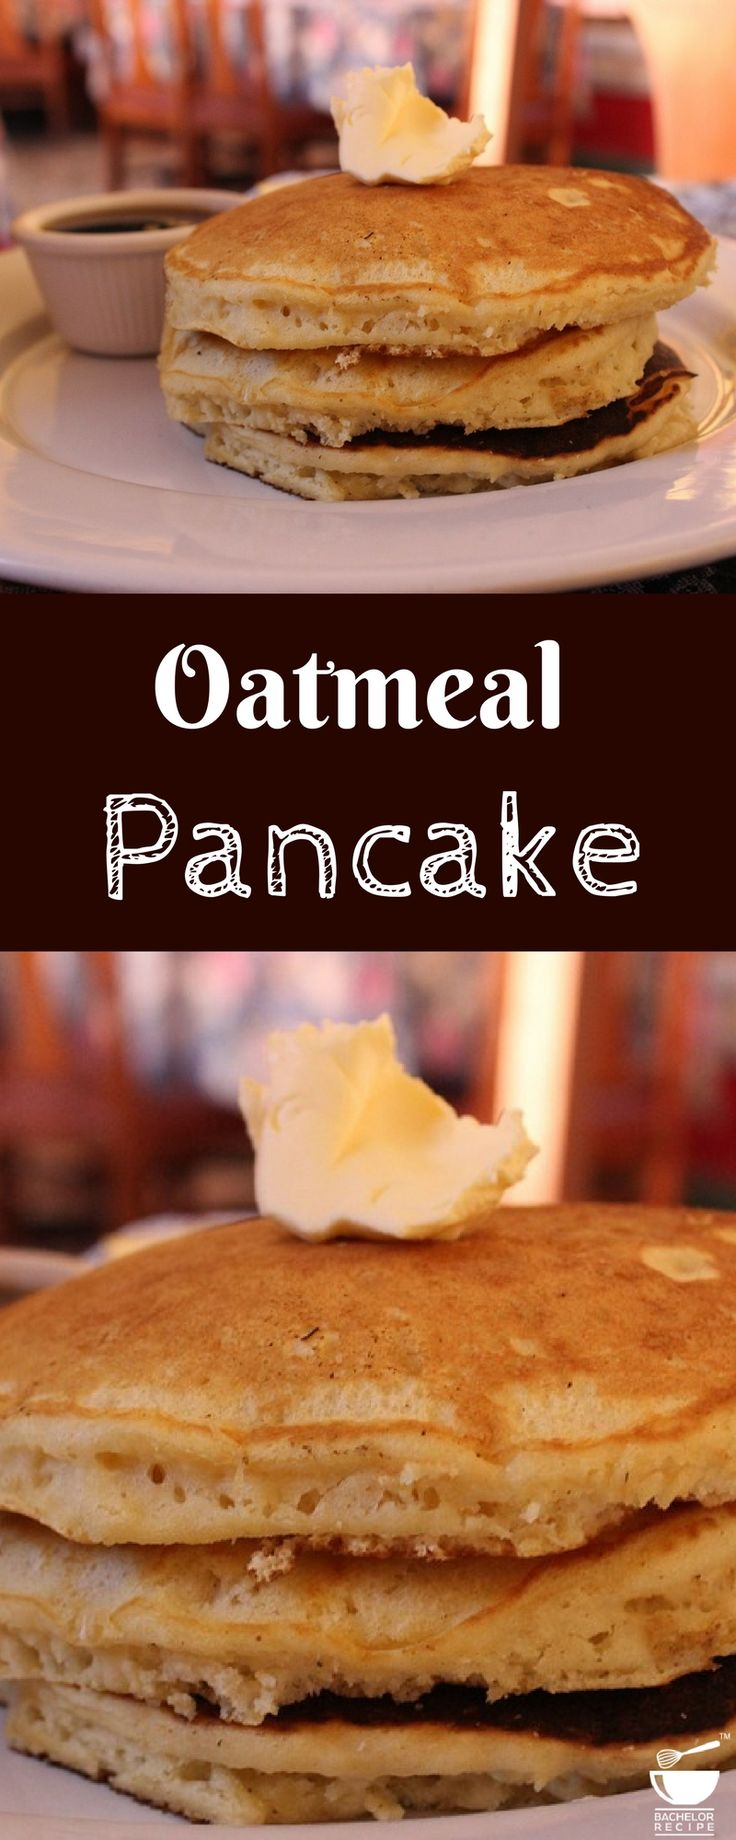 An easy Pancakes recipe perfect with fresh fruit for breakfast. #breakfast #easy #pancake  #oats #oatmeal #healthy #workout #fitness #fit